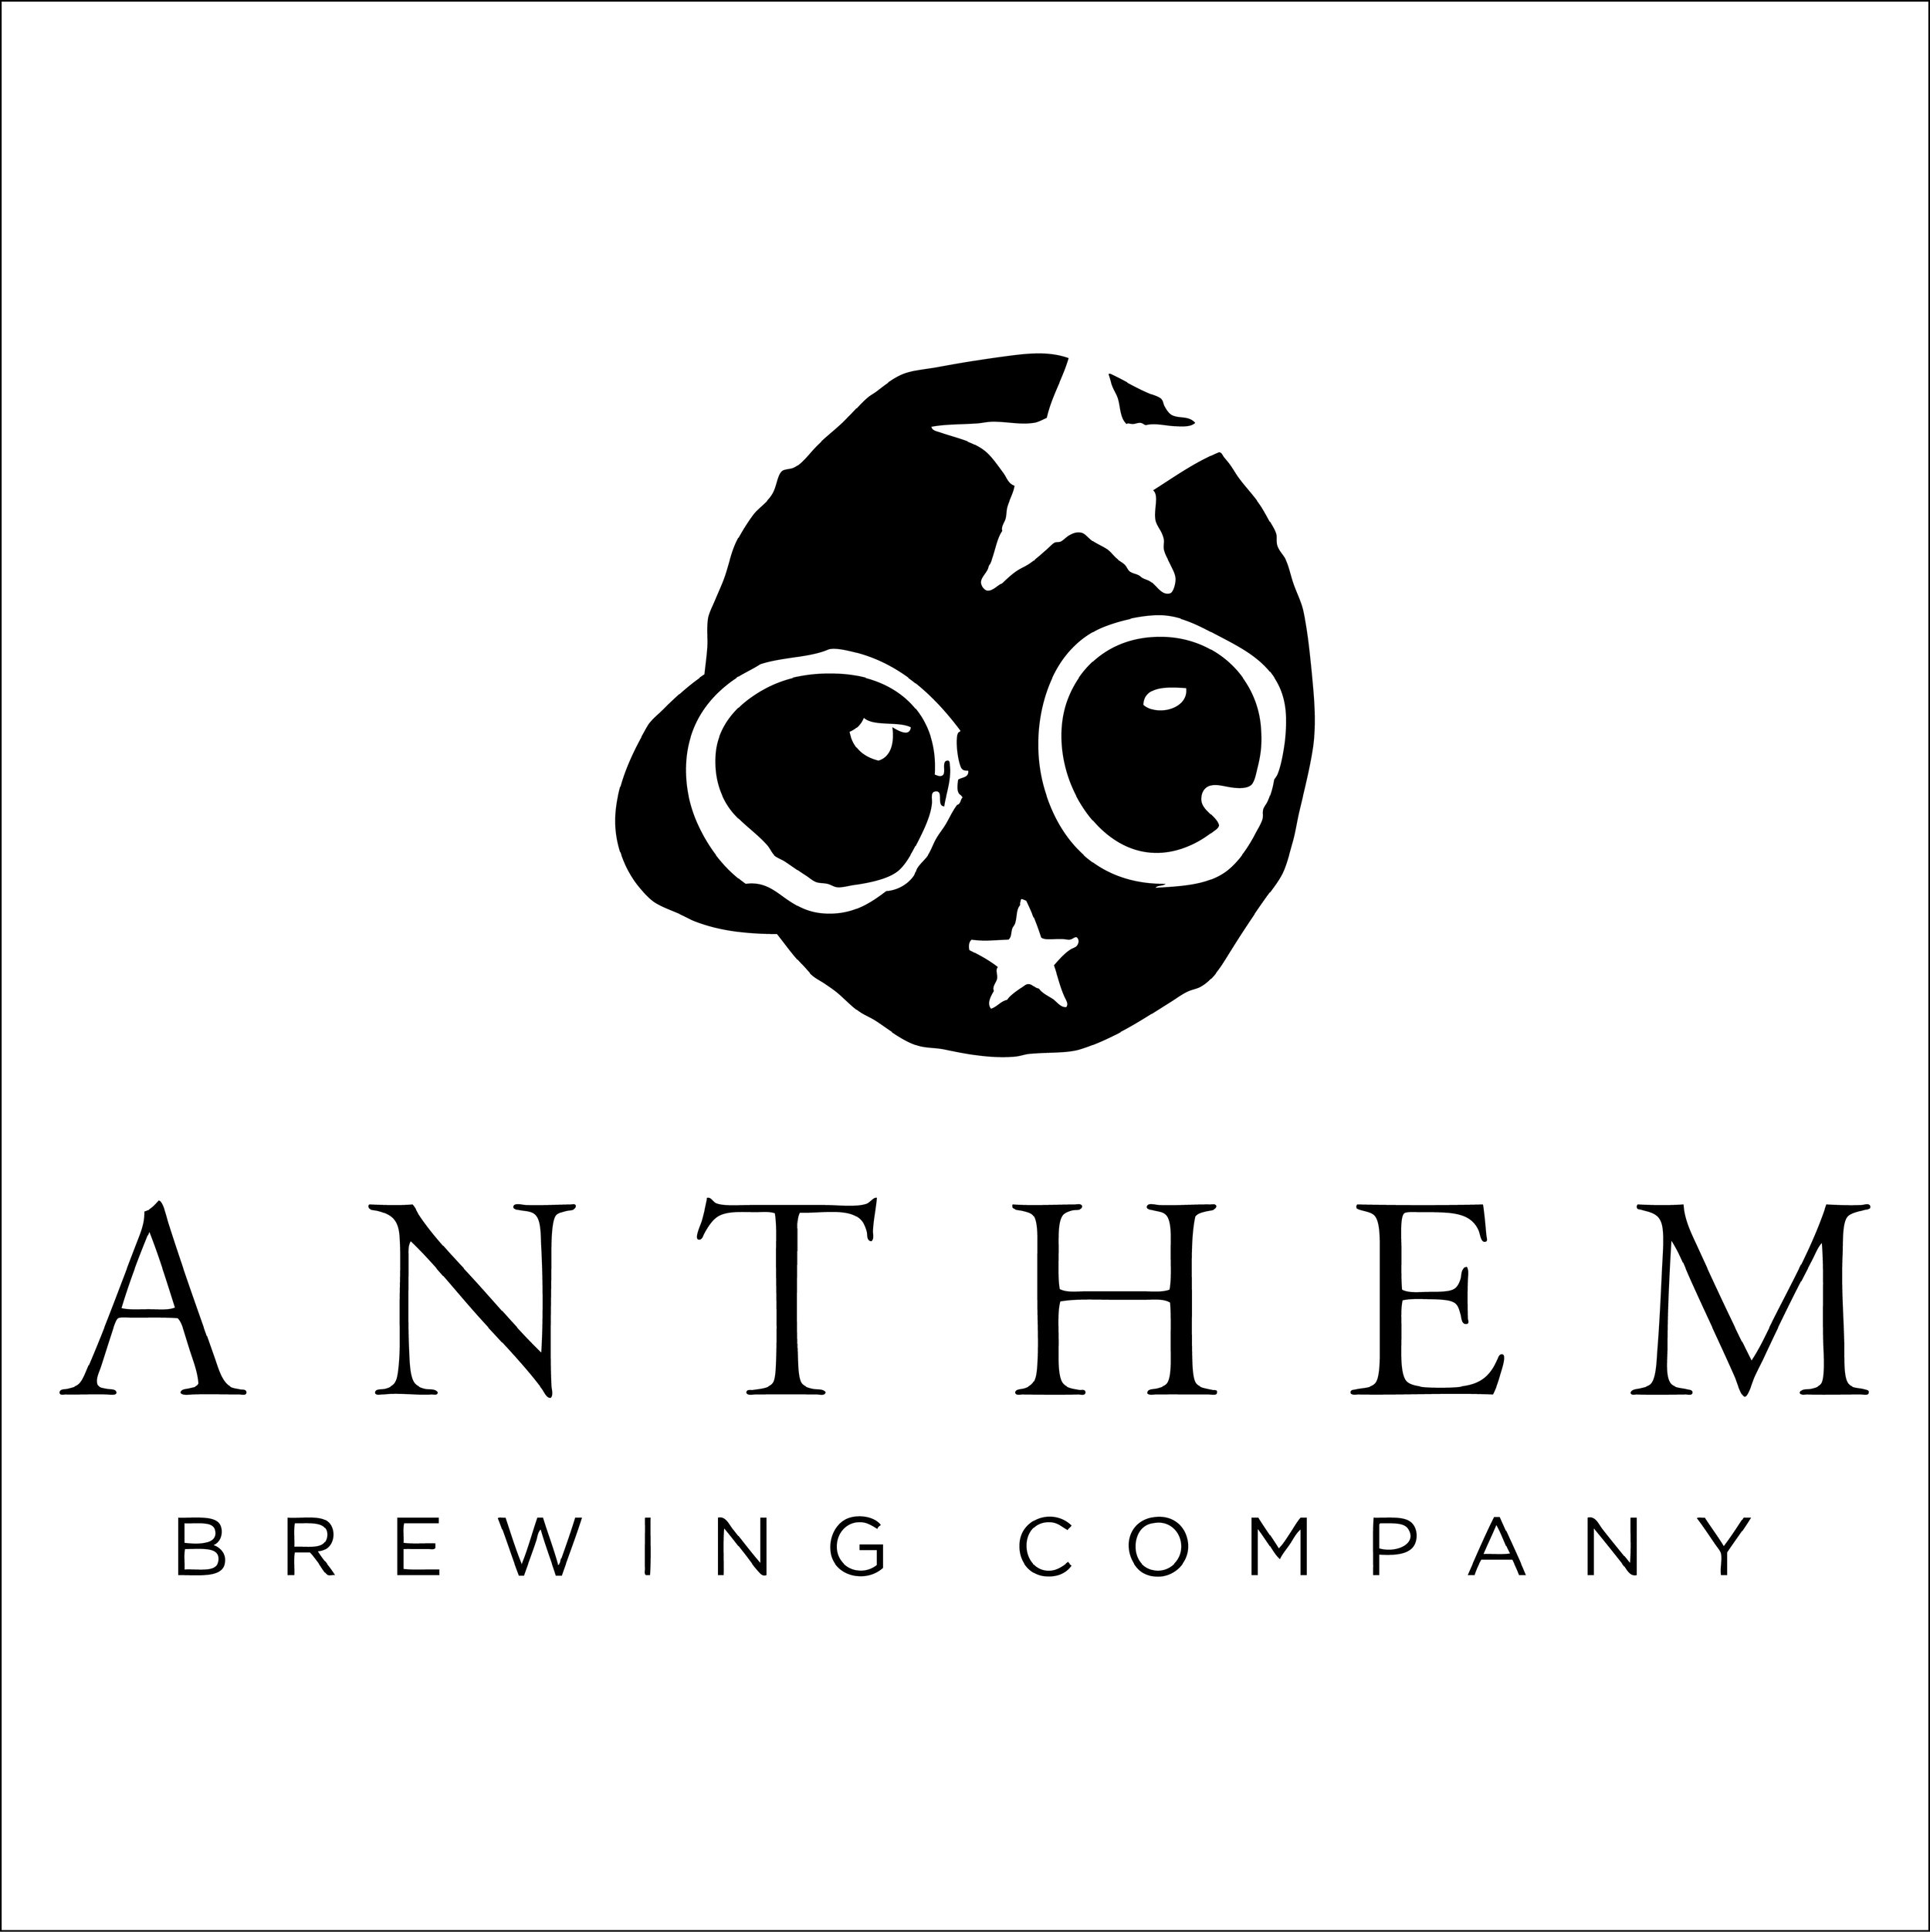 Anthem Brewing - 908 SW 4th StOKC, OK 73109Taproom Hours:Sun 12-6 pmMon 12-9 pmTues 12-9 pmWed 12-9 pmThur 12-9 pmFri 12-10 pmSat 12-10 pm